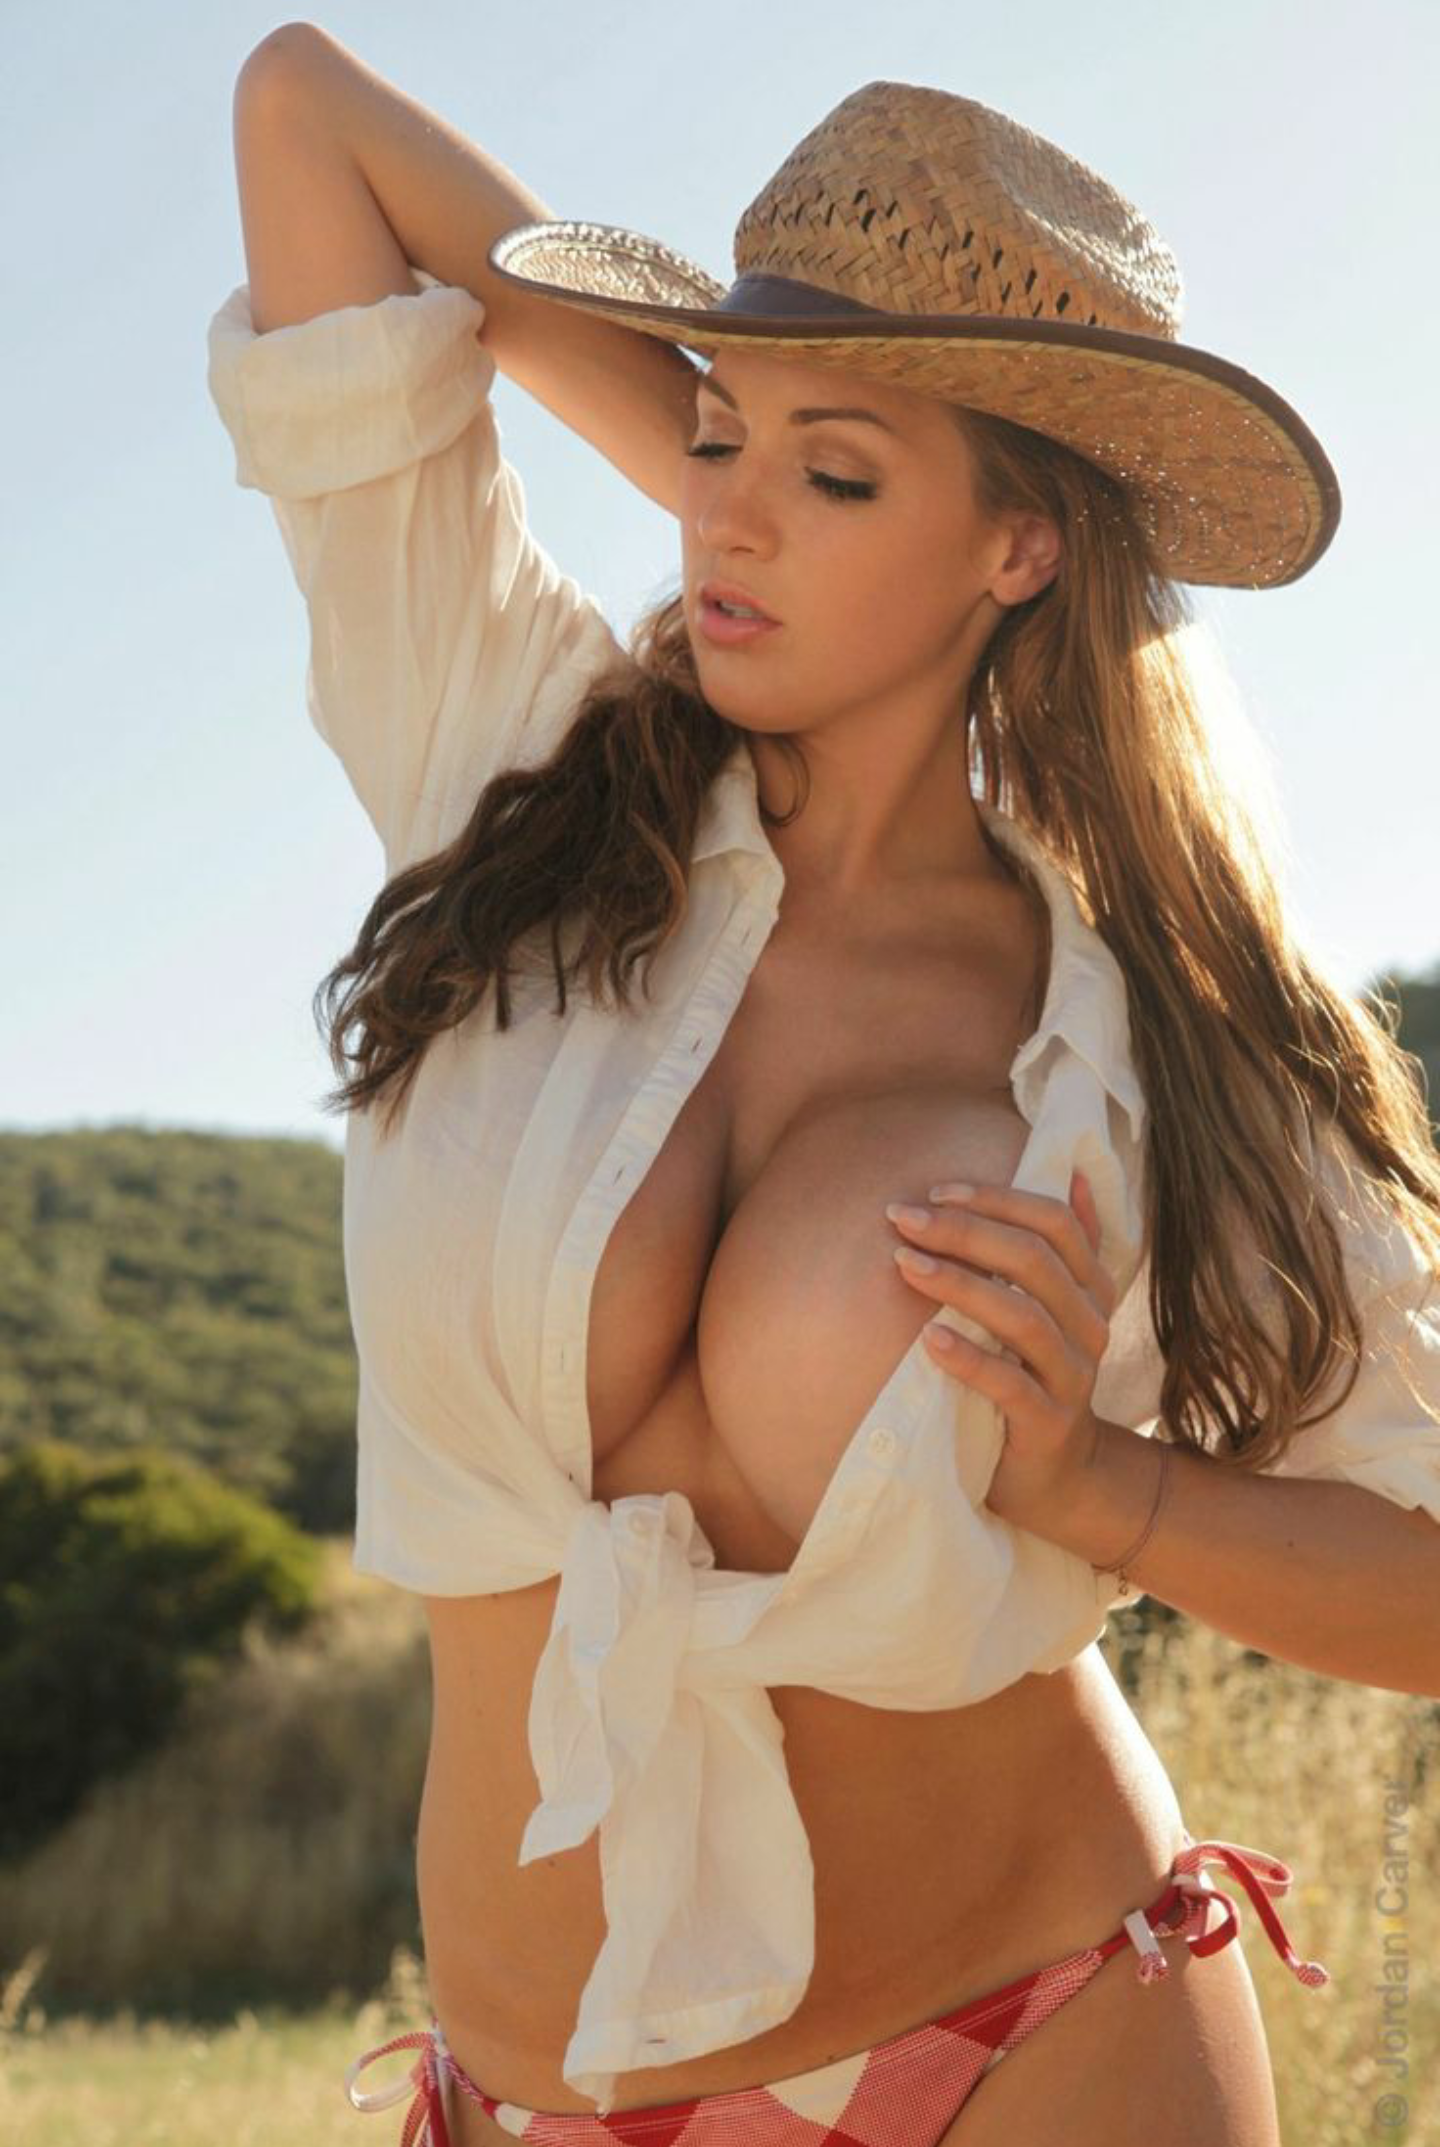 Busty Country Girl Topless Tits For Photo Car Camera